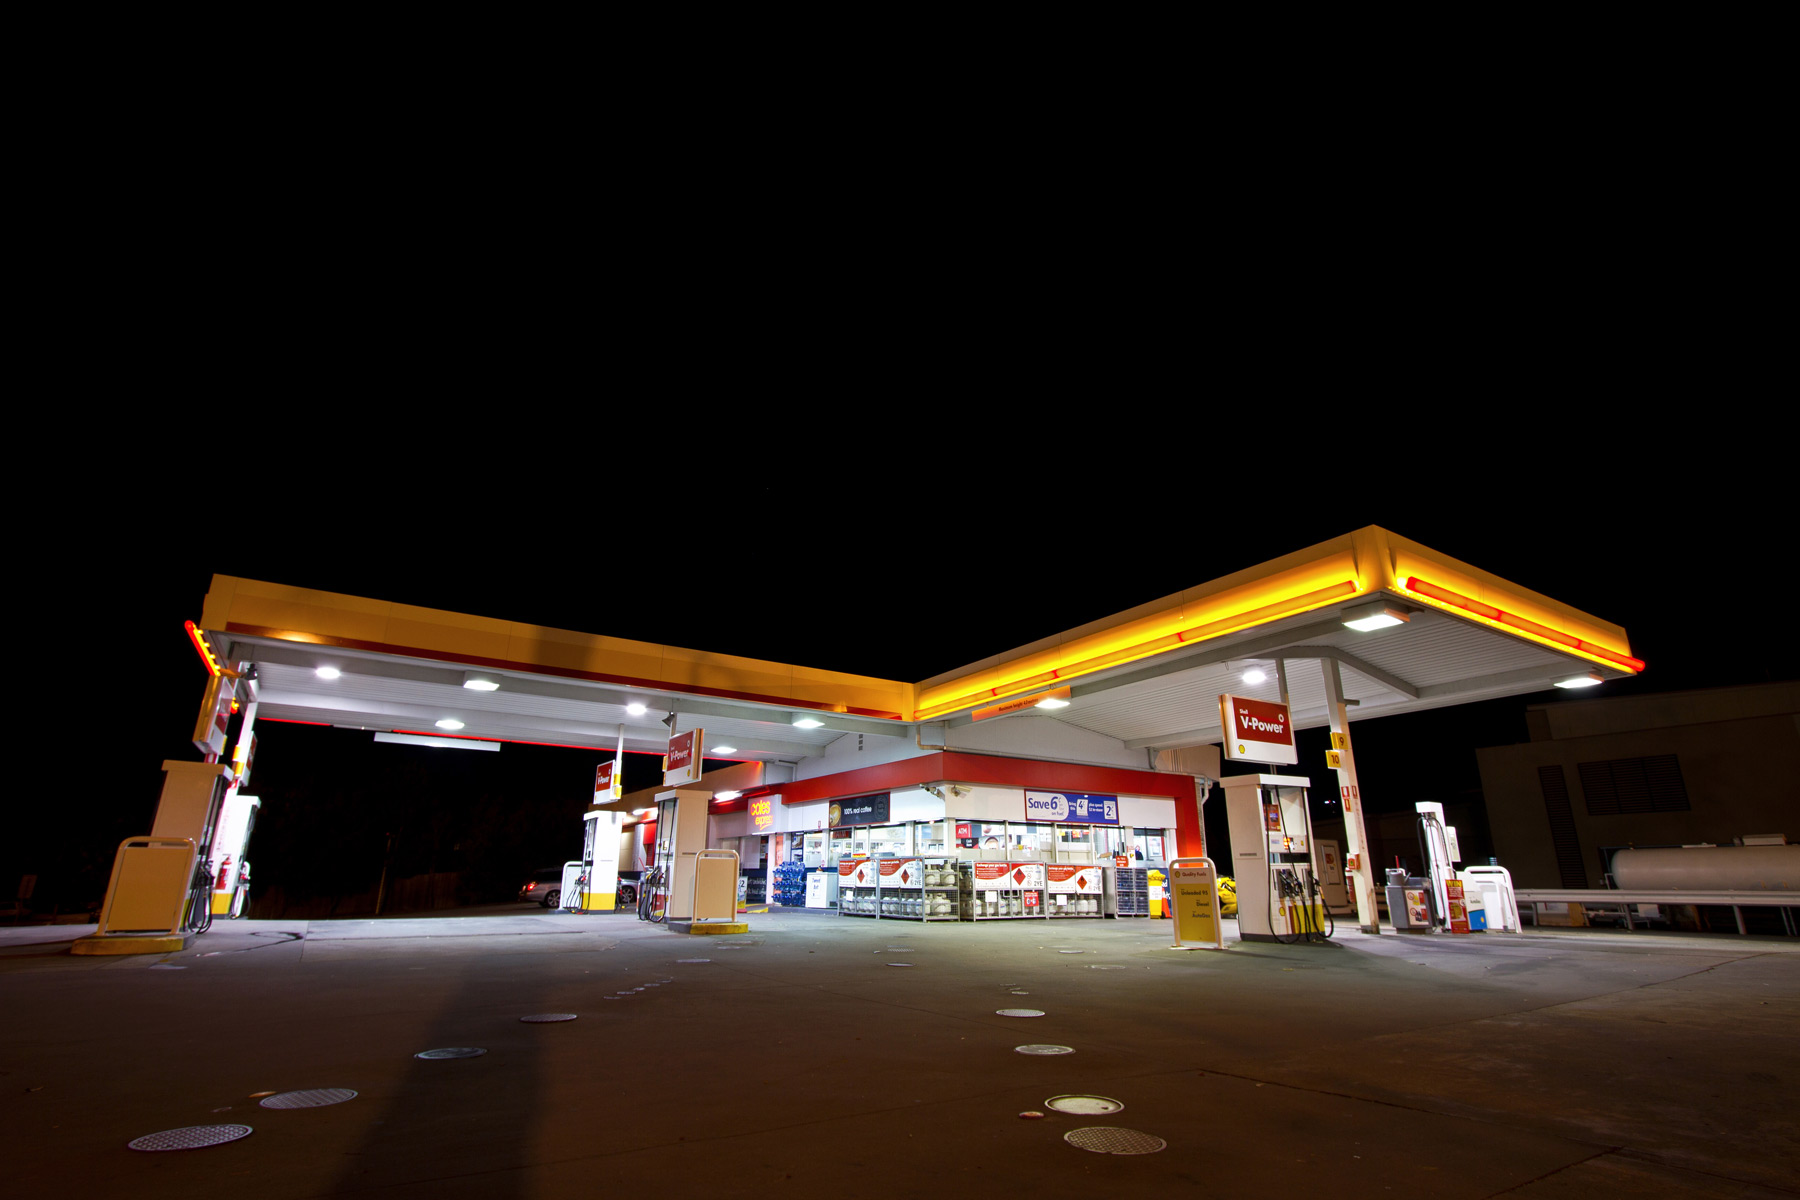 A service station at night in Bulimba, Brisbane